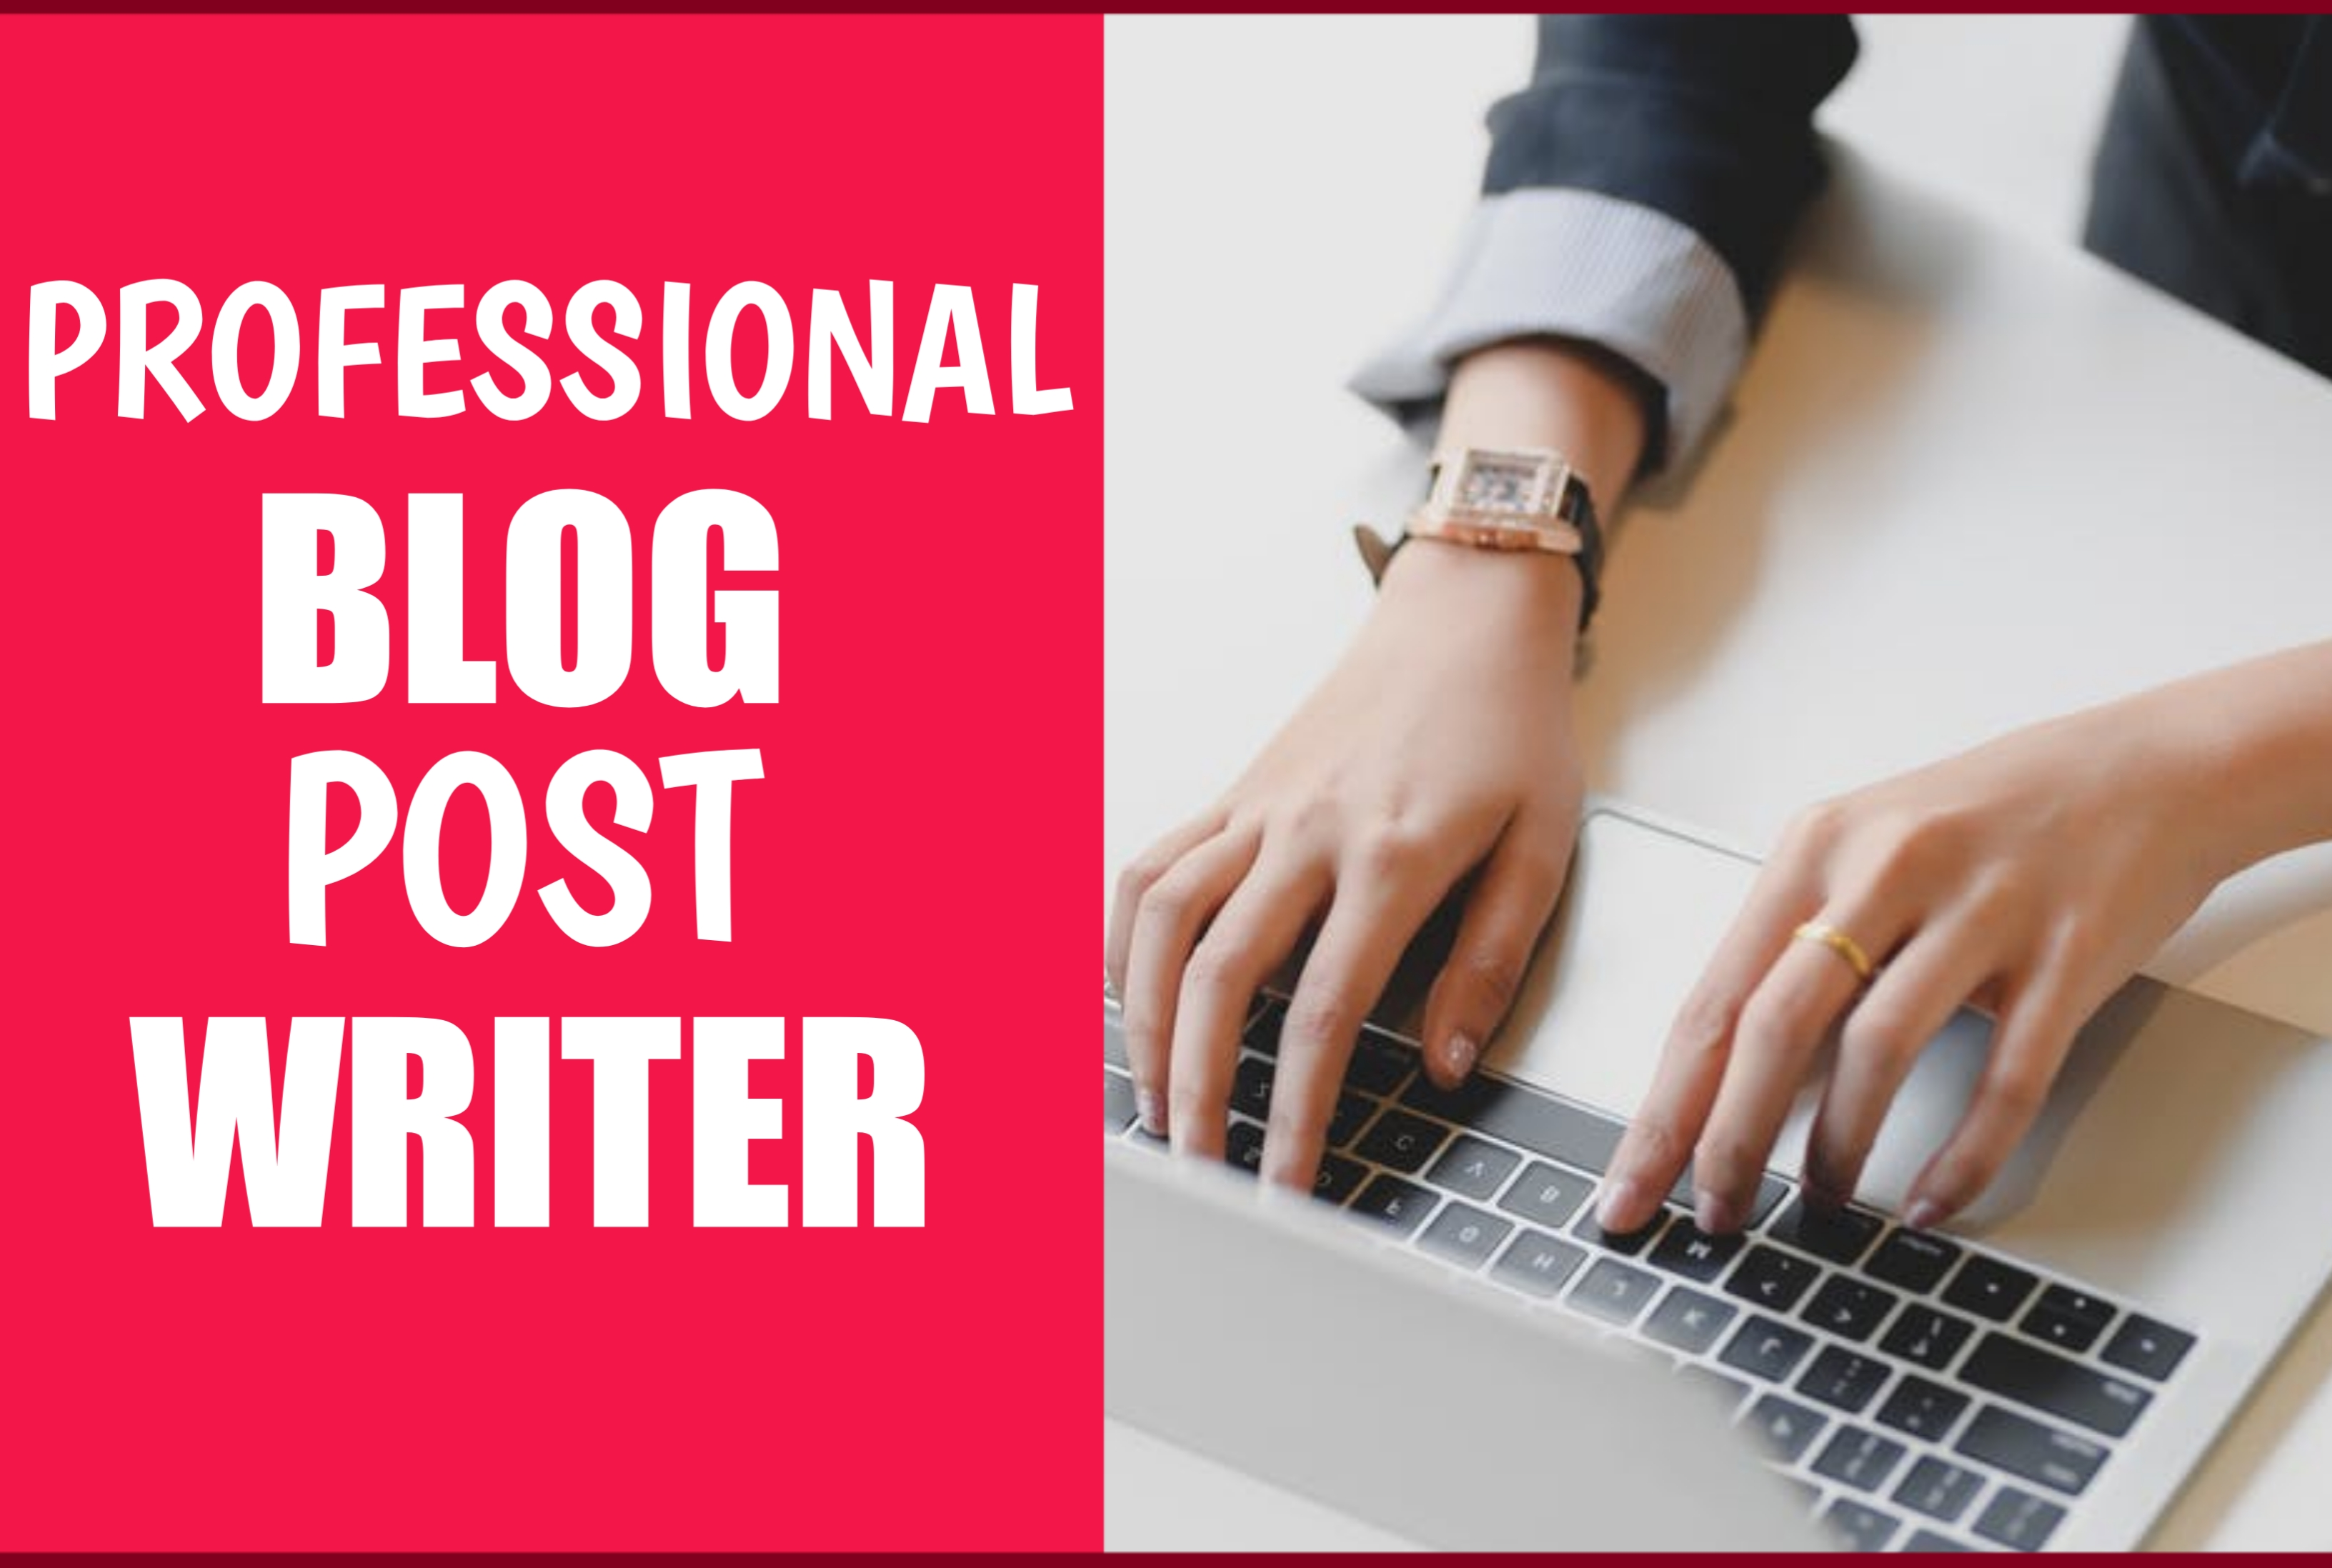 I Will Be Your Professional Blog Post Writer